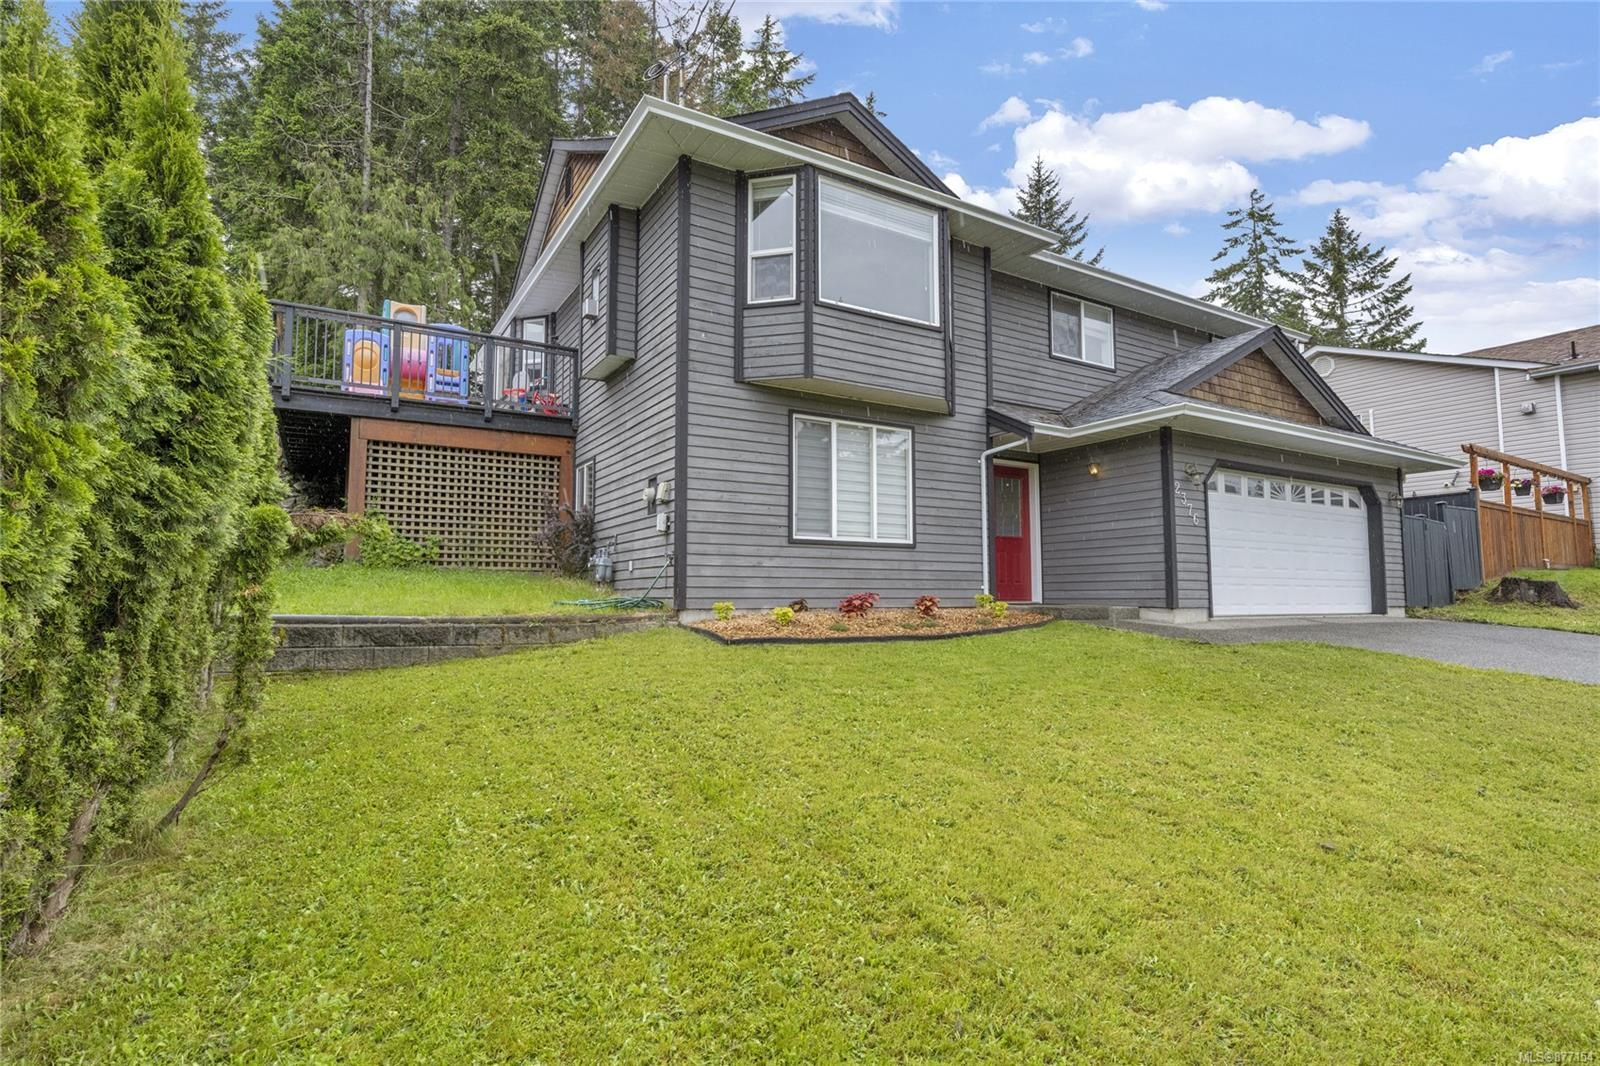 Photo 33: Photos: 2376 Terrace Rd in : ML Shawnigan House for sale (Malahat & Area)  : MLS®# 877154